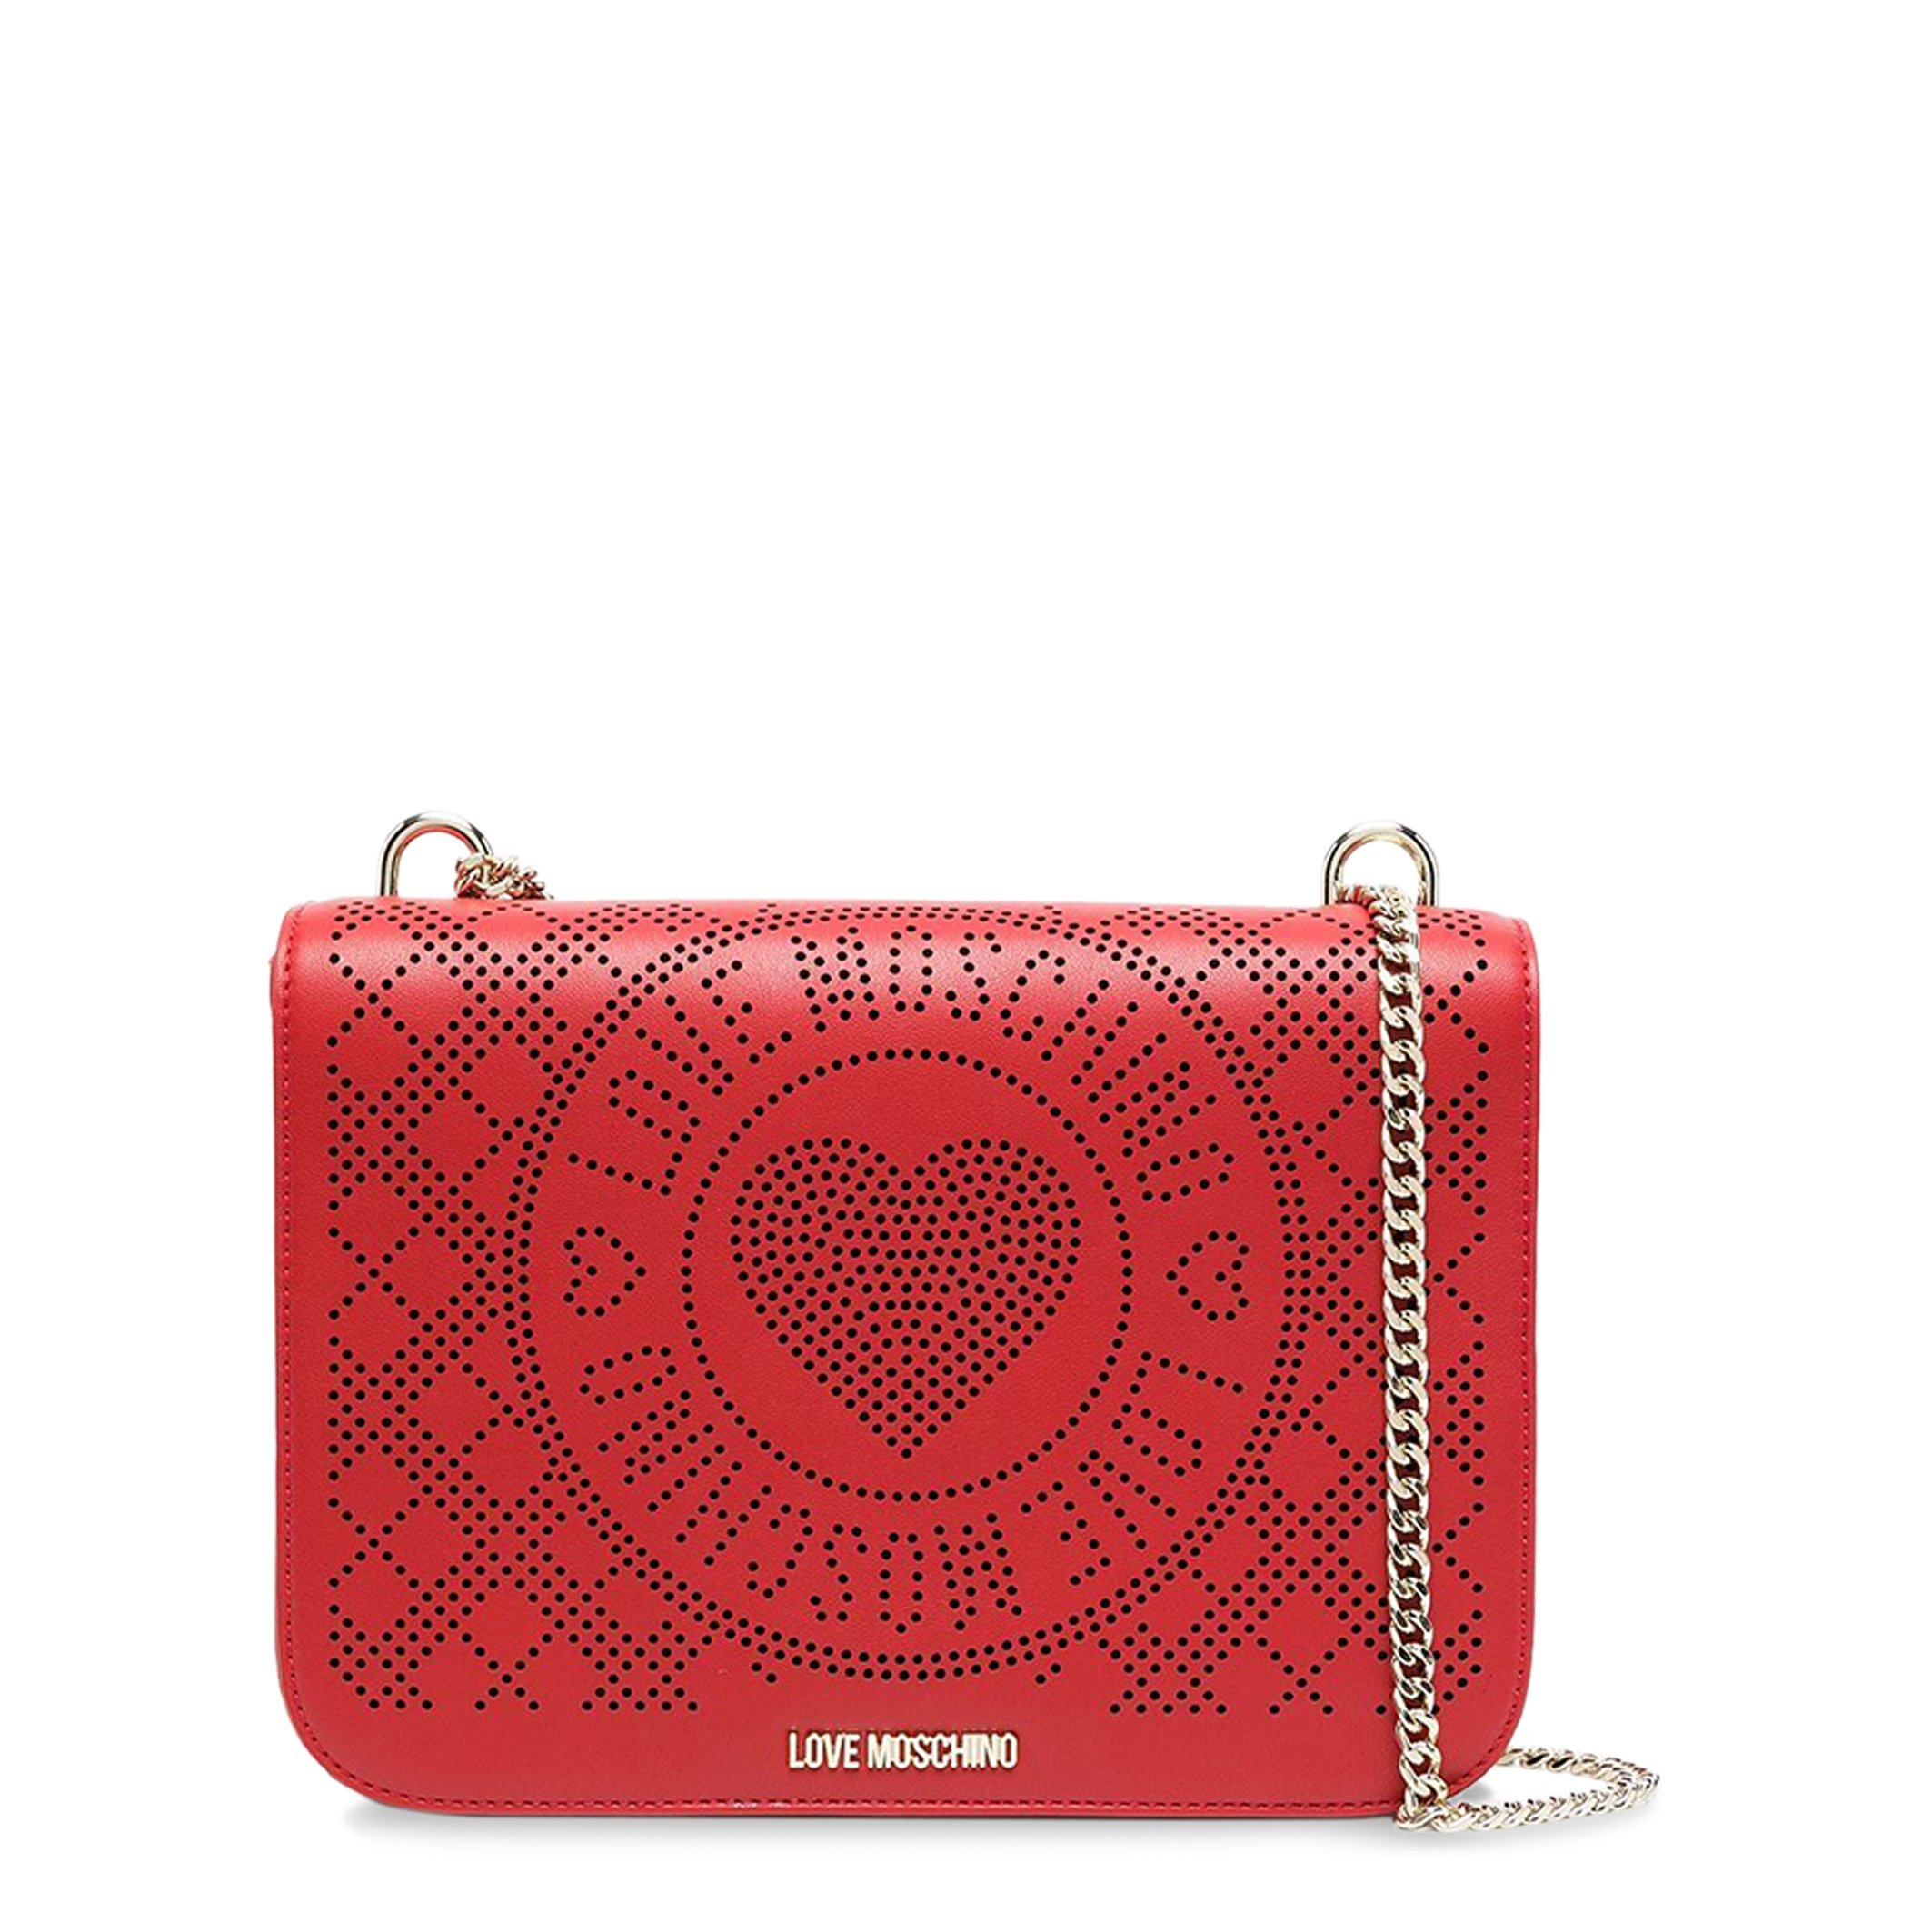 Love Moschino Women's Shoulder Bag Various Colours JC4215PP0CKB1 - red NOSIZE